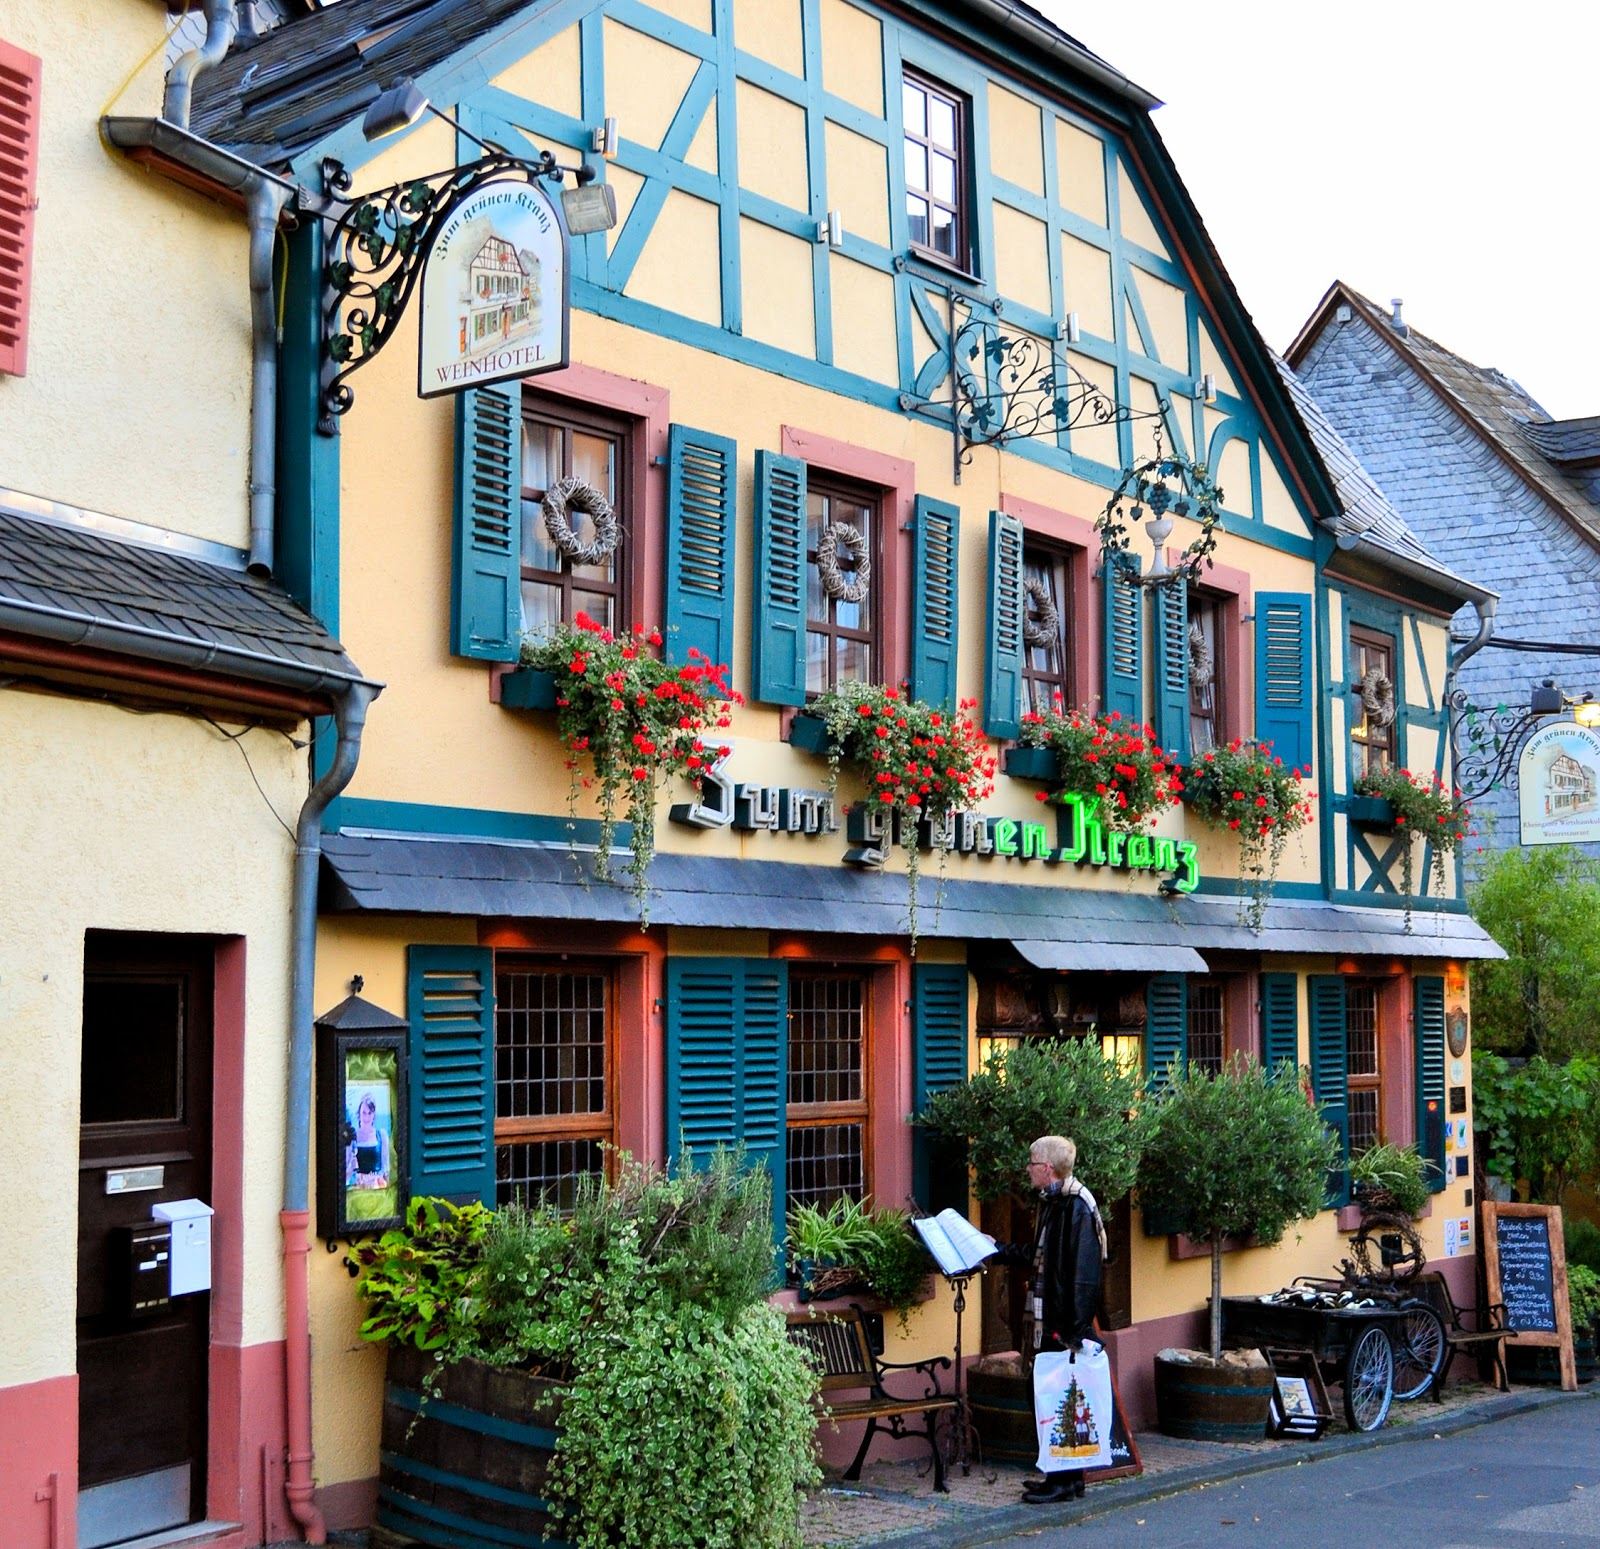 The charming family-run Hotel Zum grünen Kranz in Rüdesheim, Germany, dates back to 1826.